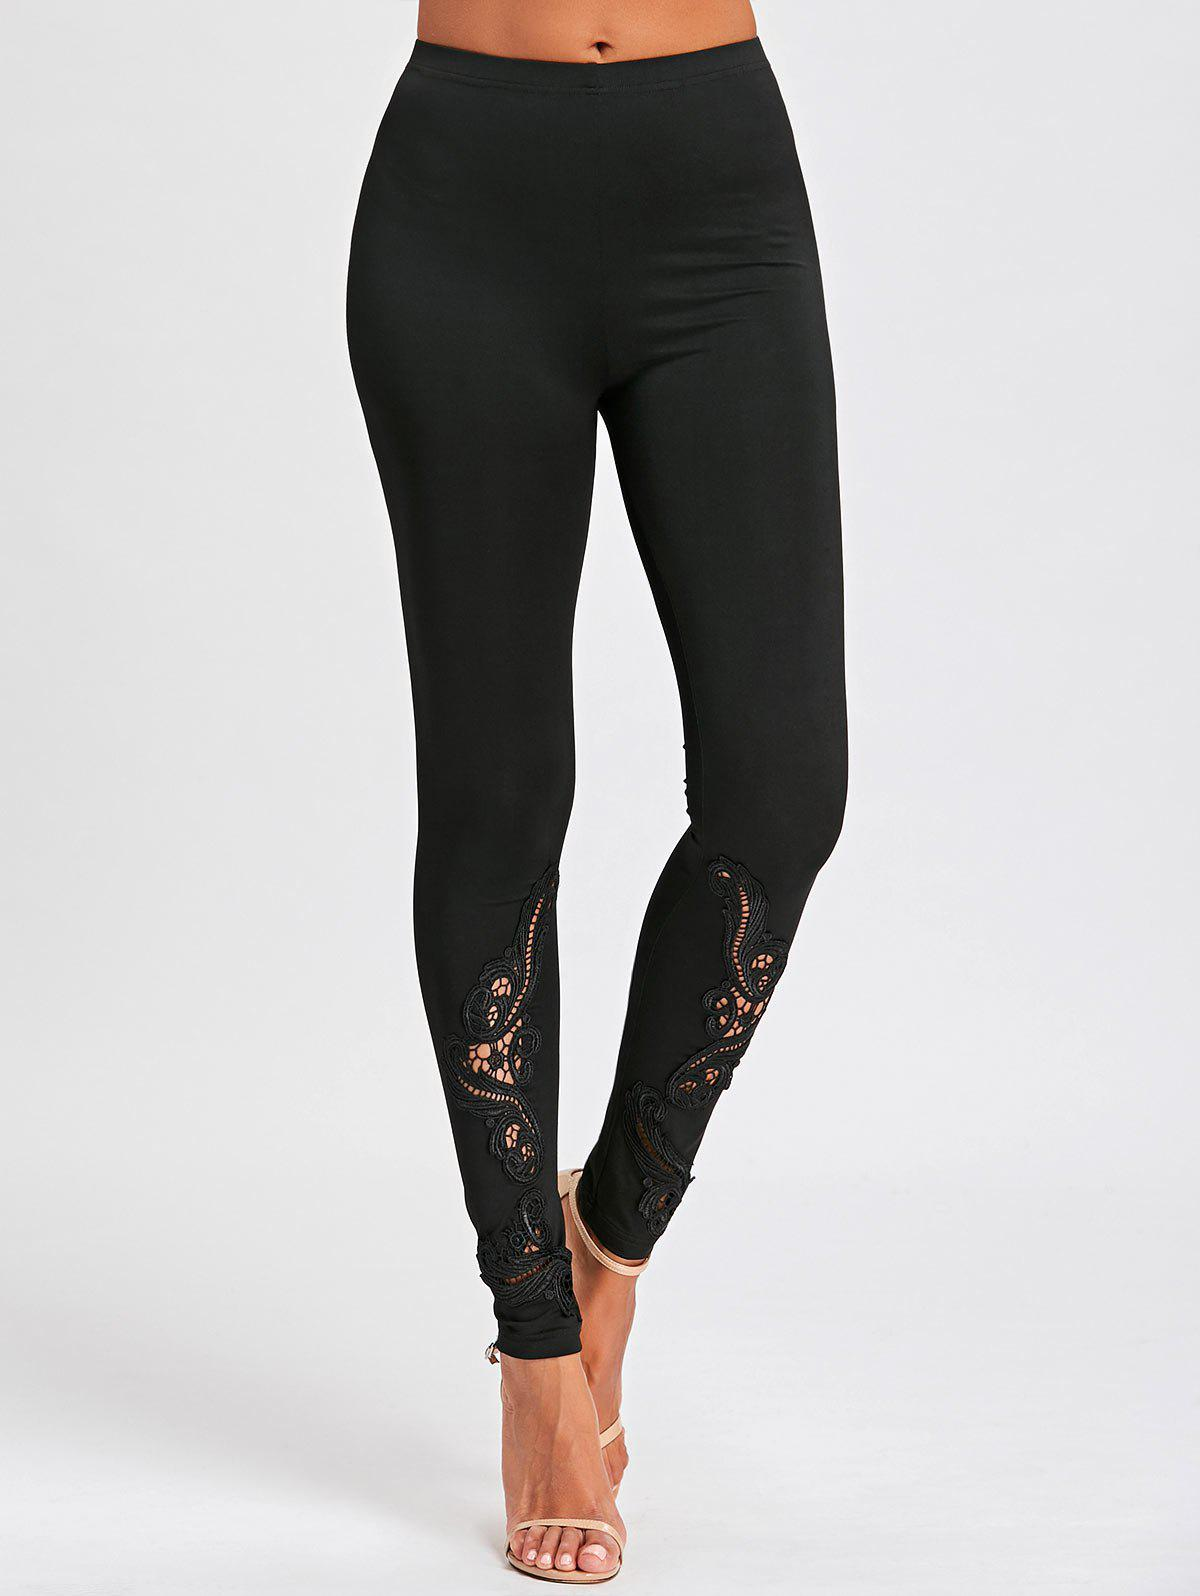 Hollow Out Lace Panel Tight LeggingsWOMEN<br><br>Size: XL; Color: BLACK; Style: Fashion; Material: Polyester,Spandex; Waist Type: High; Pattern Type: Others; Weight: 0.2500kg; Package Contents: 1 x Leggings;